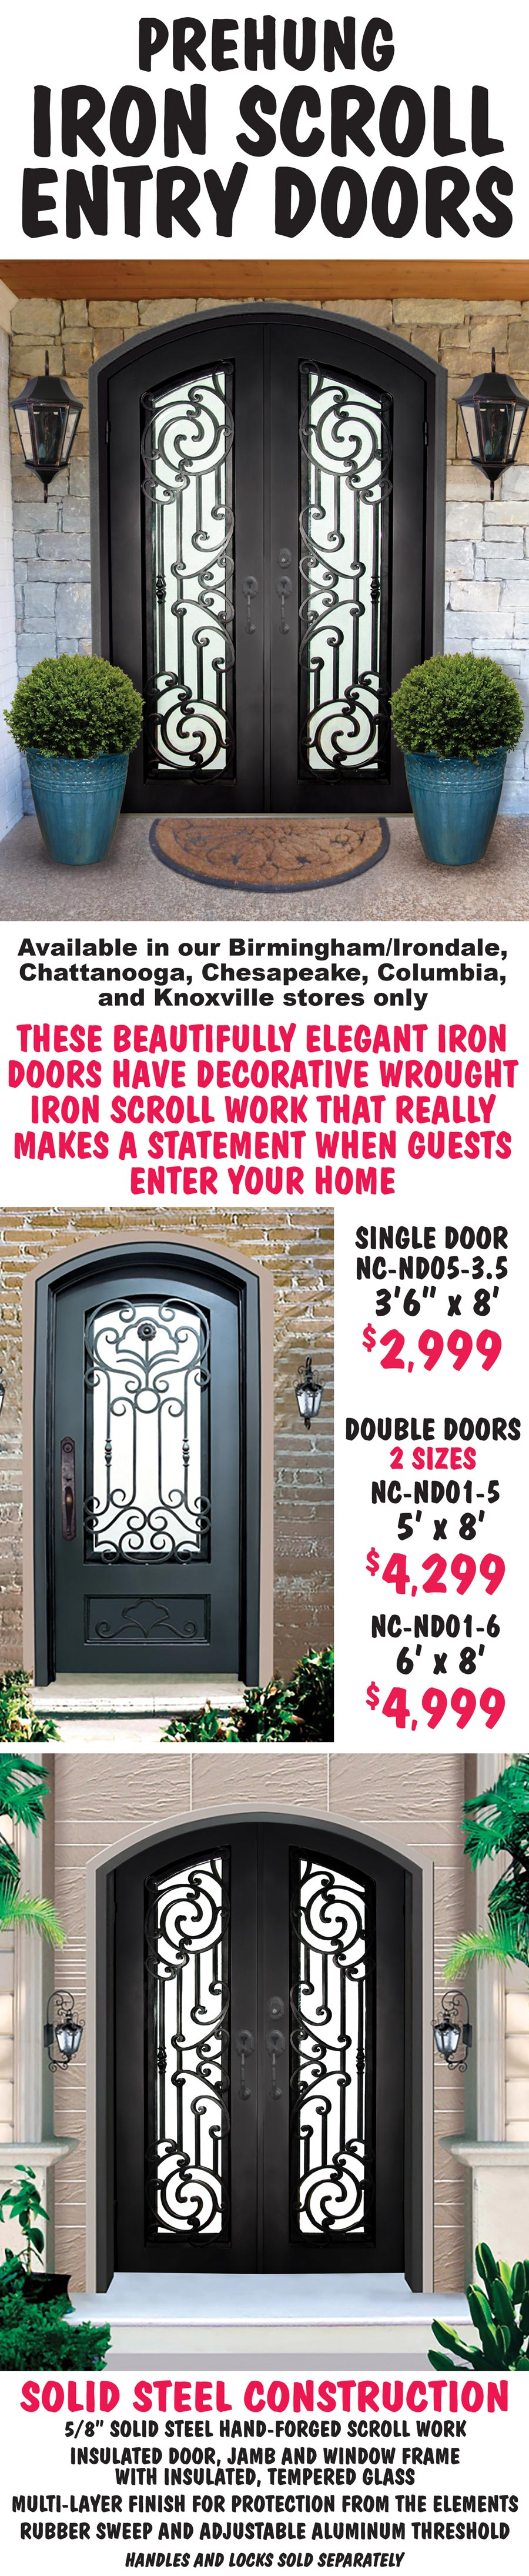 Iron Scroll Entry Doors with insulated glass, prehung. Single door $2,999, Double Door in 2 sizes, $4,299 and $4,999. These beautifully elegant iron doors have decorative wrought iron scroll work that really makes a statement when guests enter your home.